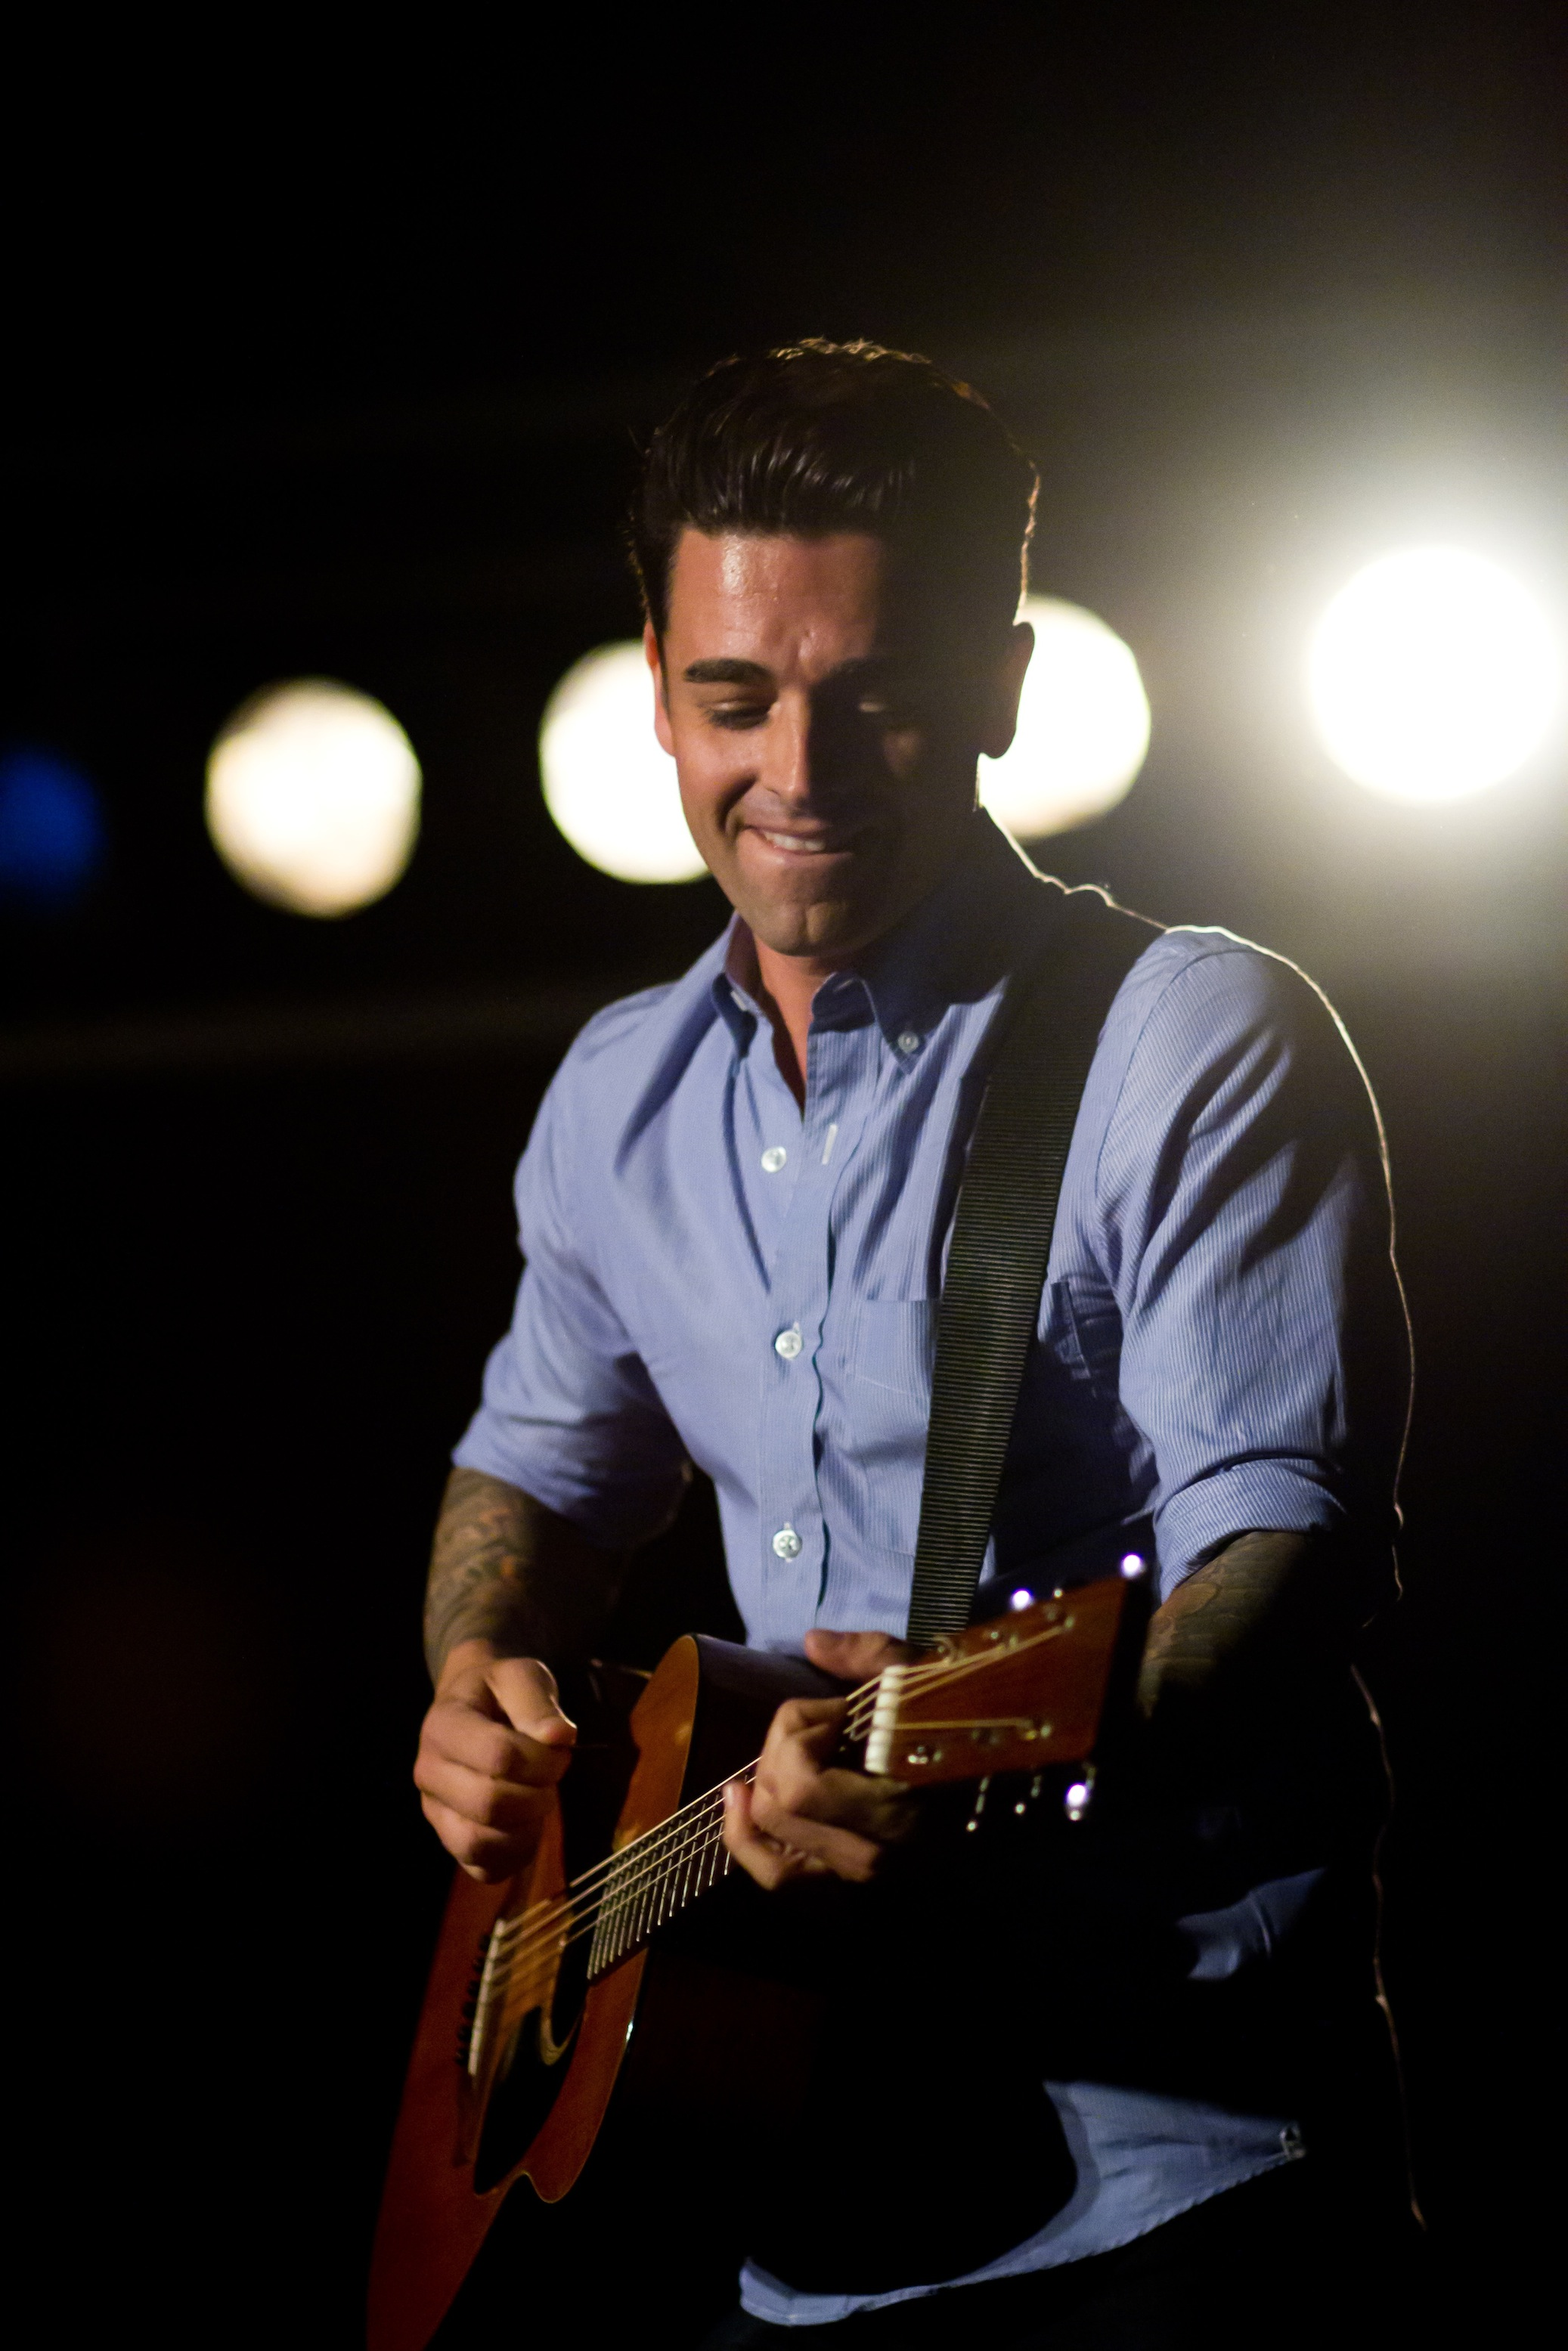 Dashboard Confessional, Jack's Mannequin and Relient K sidwaves announced